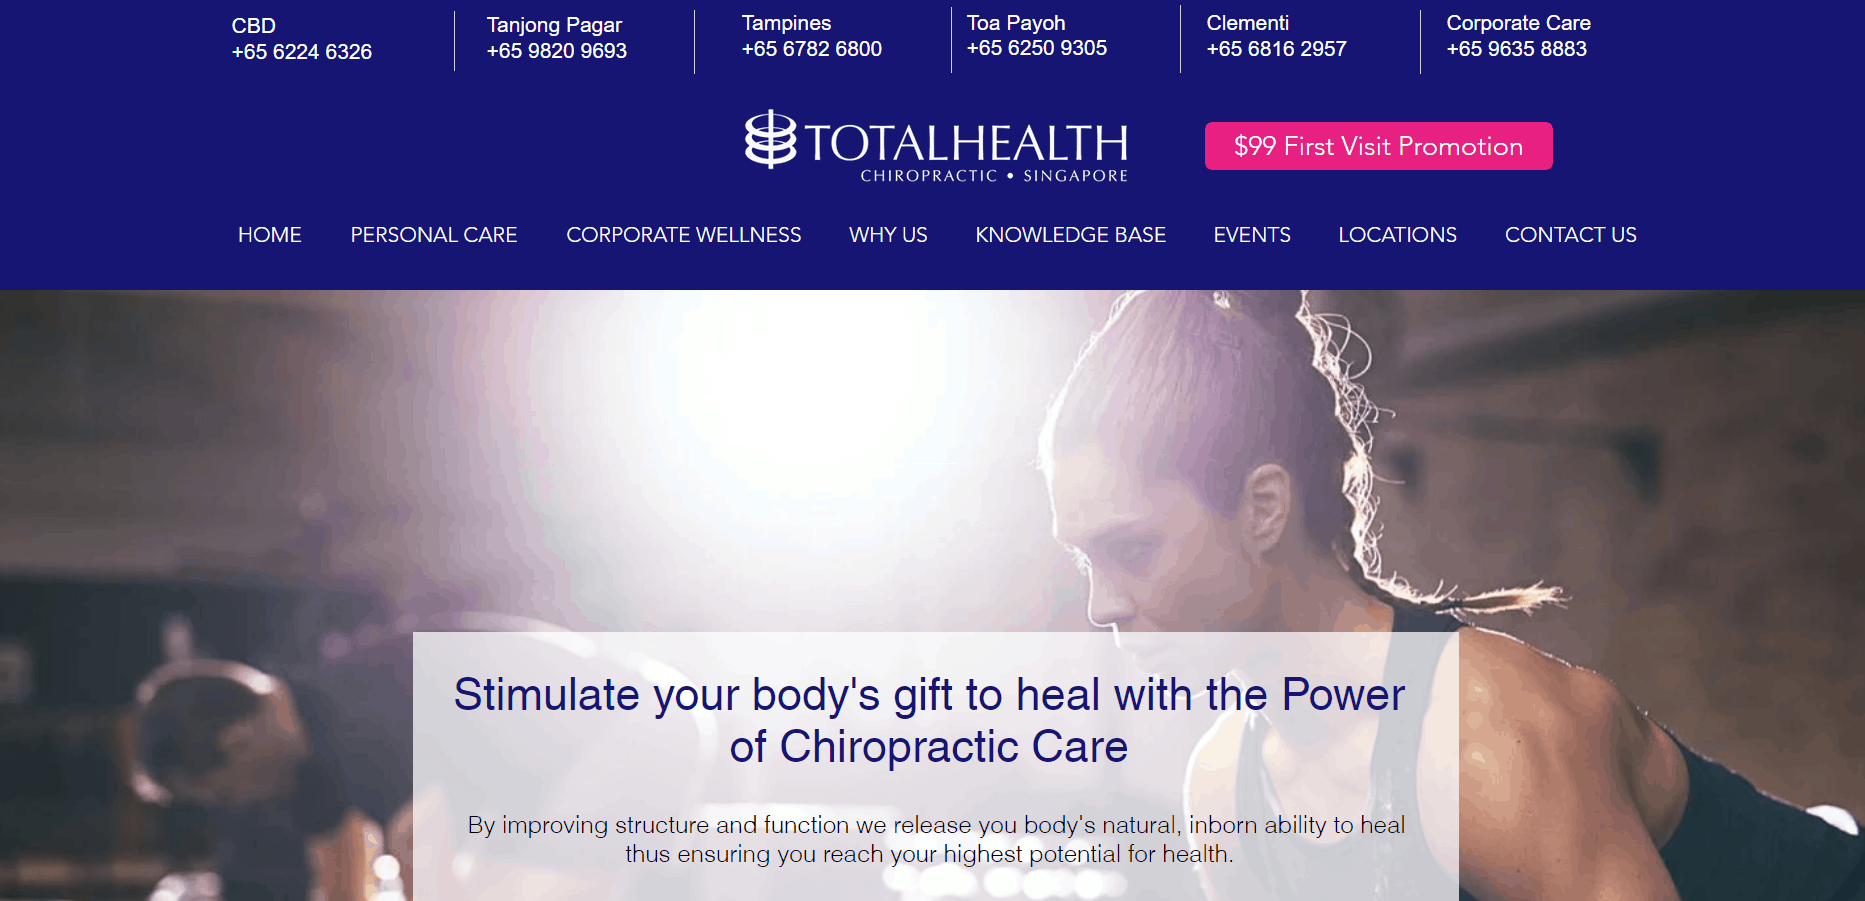 Total Health Chiropractic The 10 Best Chiropractors in Singapore for Chronic Pain neck pain back pain muscle pain